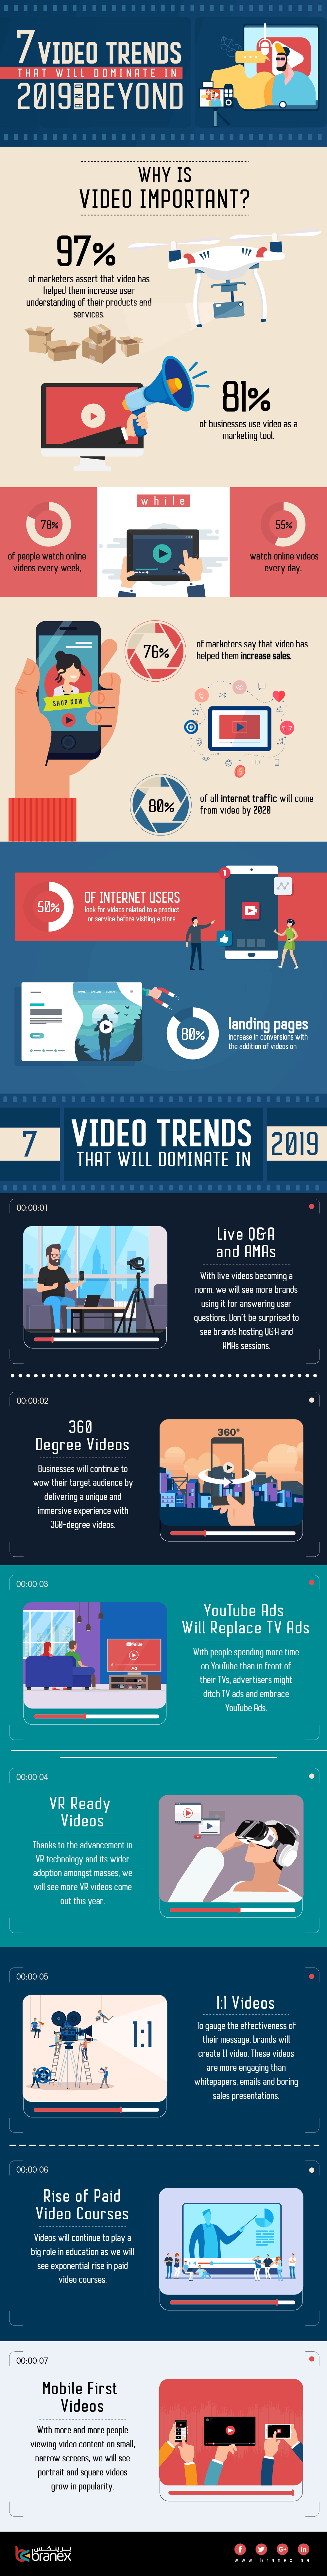 Infographic looks at rising video content trends